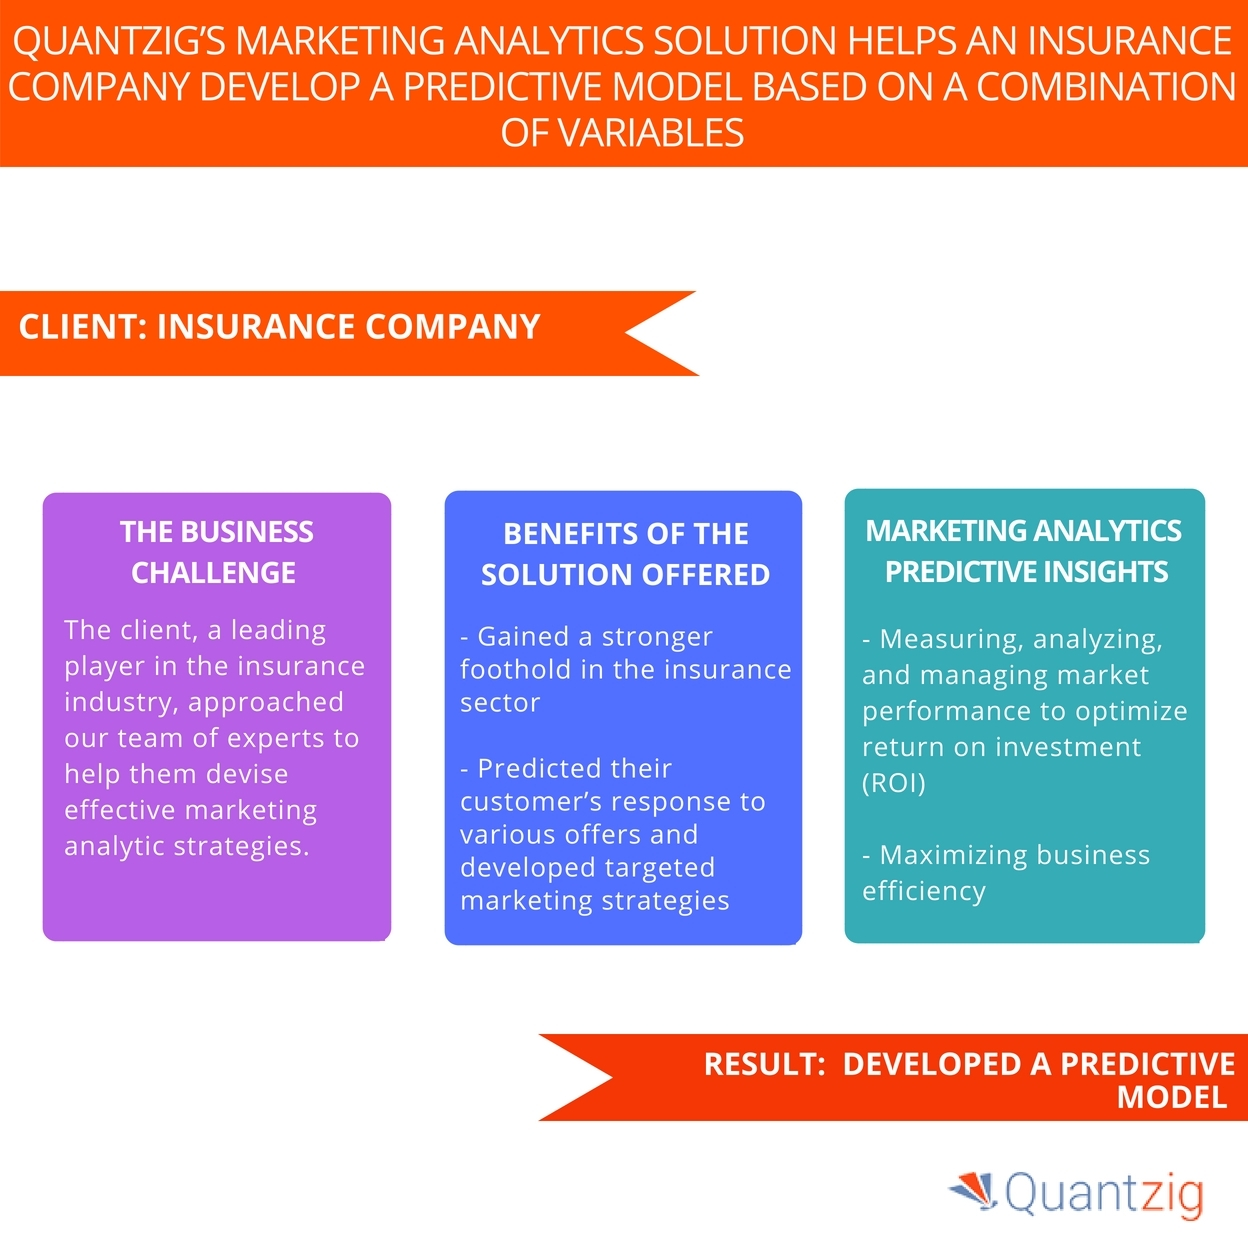 Quantzig's Data Management Solution Helped an Insurance Company to